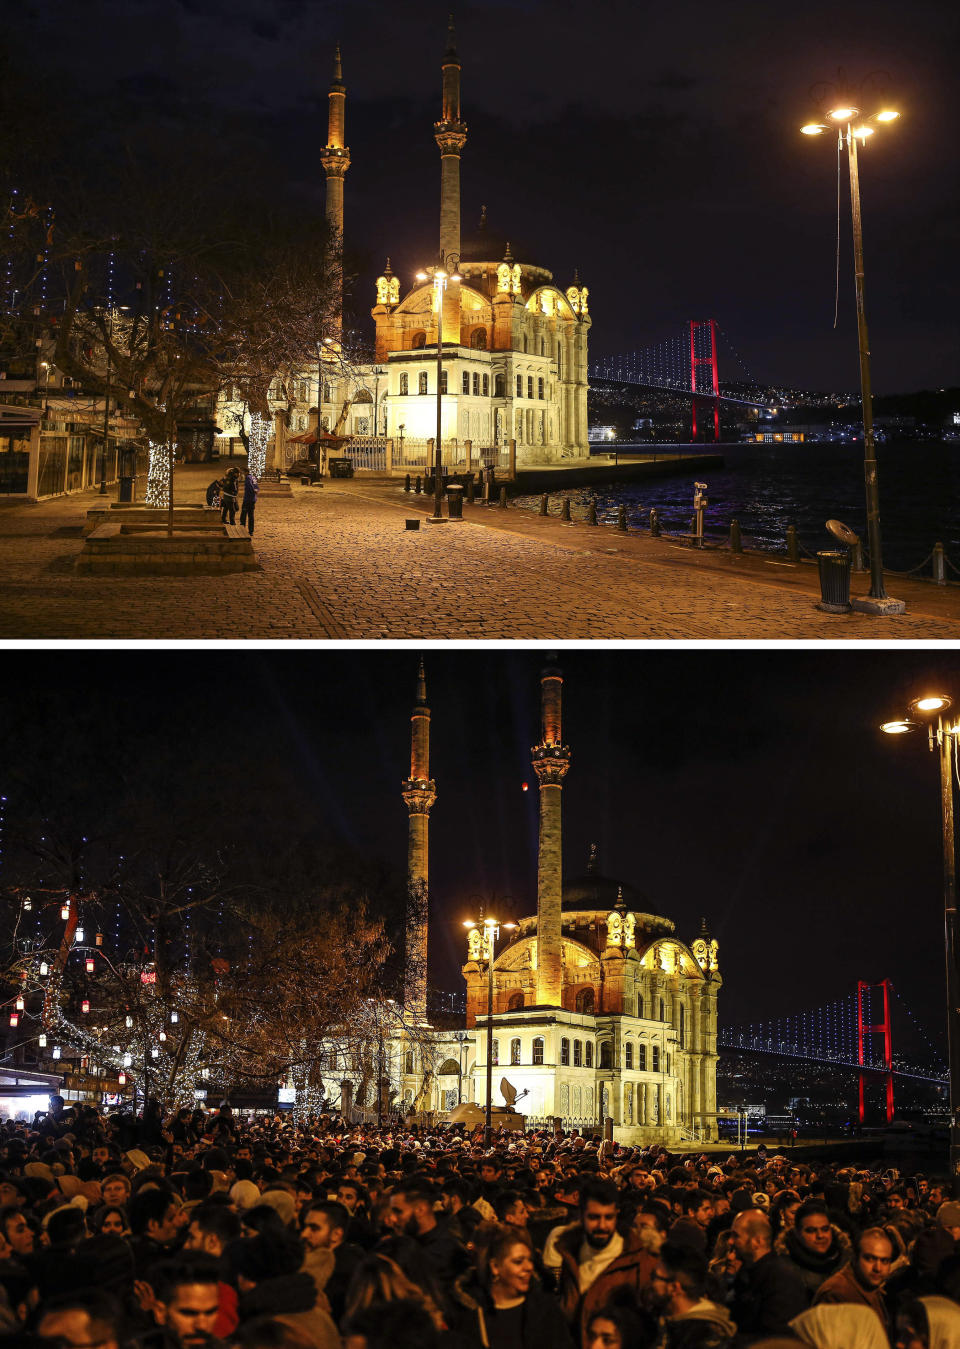 """In this combo of images, a few people, on the top image, stand in the plaza in front of the Ottoman-era Mecidiye mosque in Ortakoy square under the """"July 15th Martyrs' bridge, formerly known as Bosporus Bridge, over the Bosporus Strait, separating Europe and Asia, in Istanbul, late Thursday, Dec. 31, 2020, where in the bottom image people celebrate the new year at the same spot, early Wednesday, Jan. 1, 2020. As the world says goodbye to 2020, there will be countdowns and live performances, but no massed jubilant crowds in traditional gathering spots like the Champs Elysees in Paris and New York City's Times Square this New Year's Eve. The virus that ruined 2020 has led to cancelations of most fireworks displays and public events in favor of made-for-TV-only moments in party spots like London and Rio de Janeiro. (AP Photo/Emrah Gurel)"""